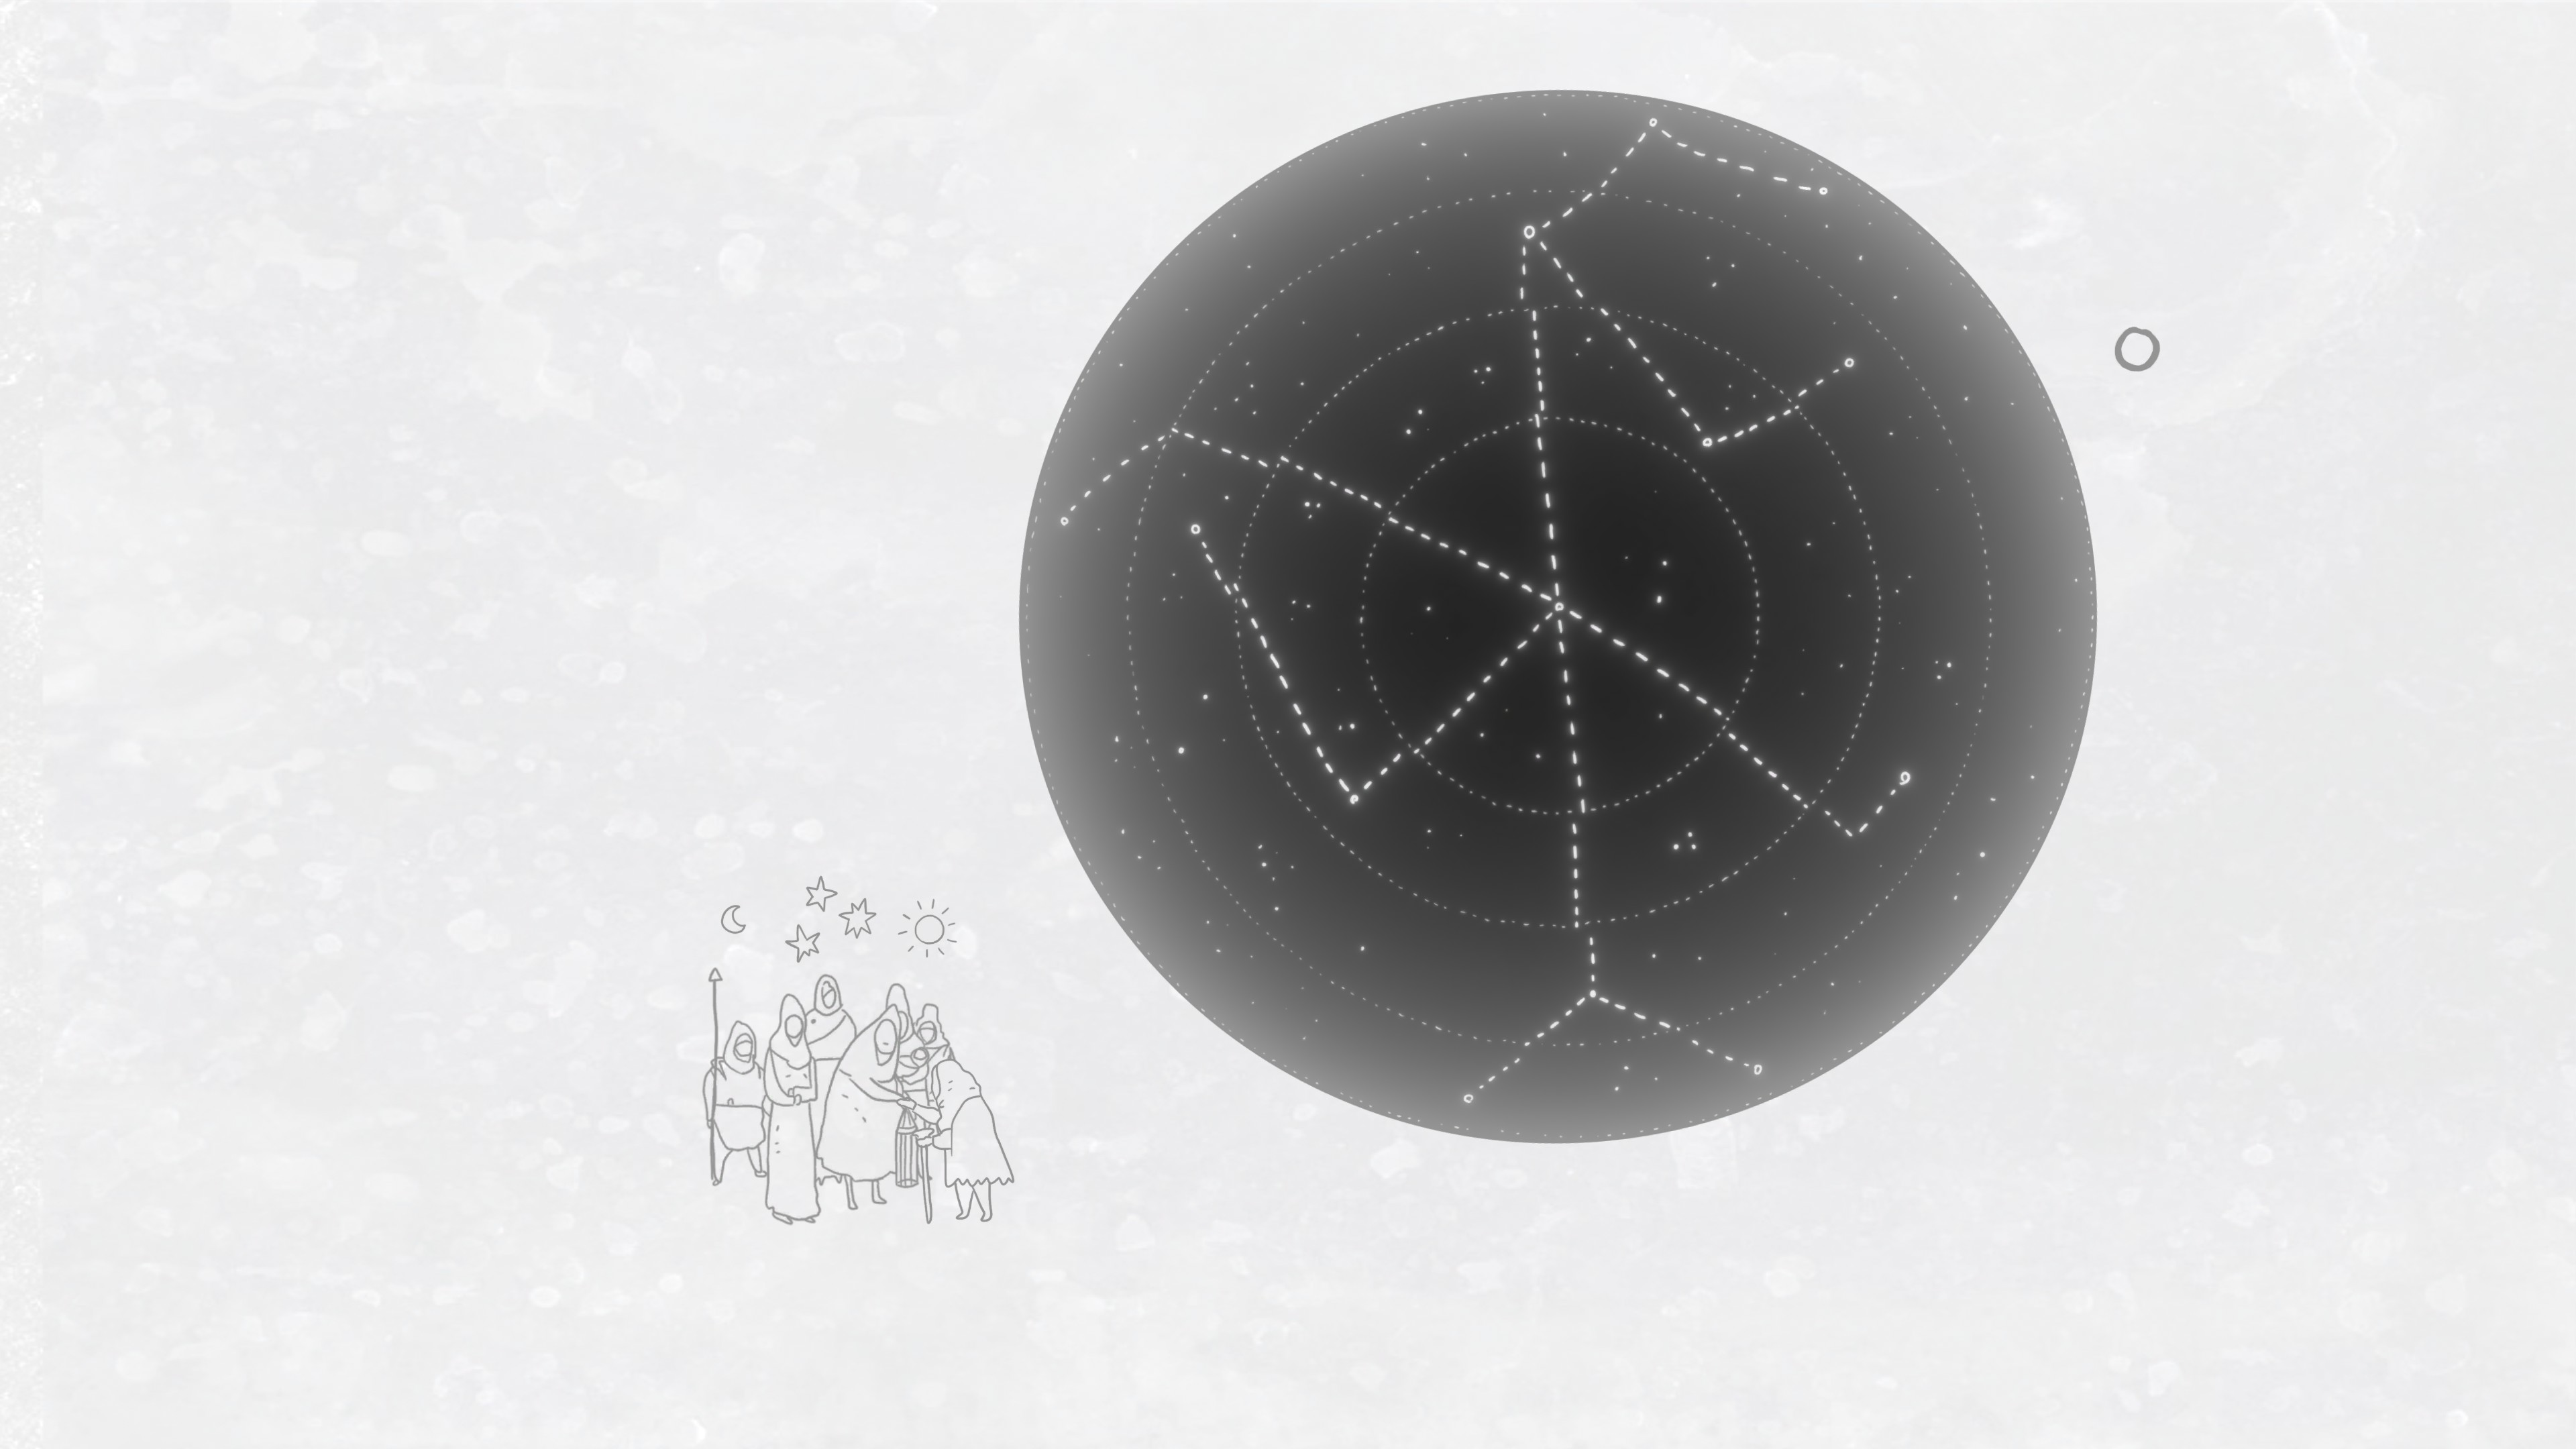 Arrog. A gathering of people in simple clothes below a constellation on a series of interlocking rings